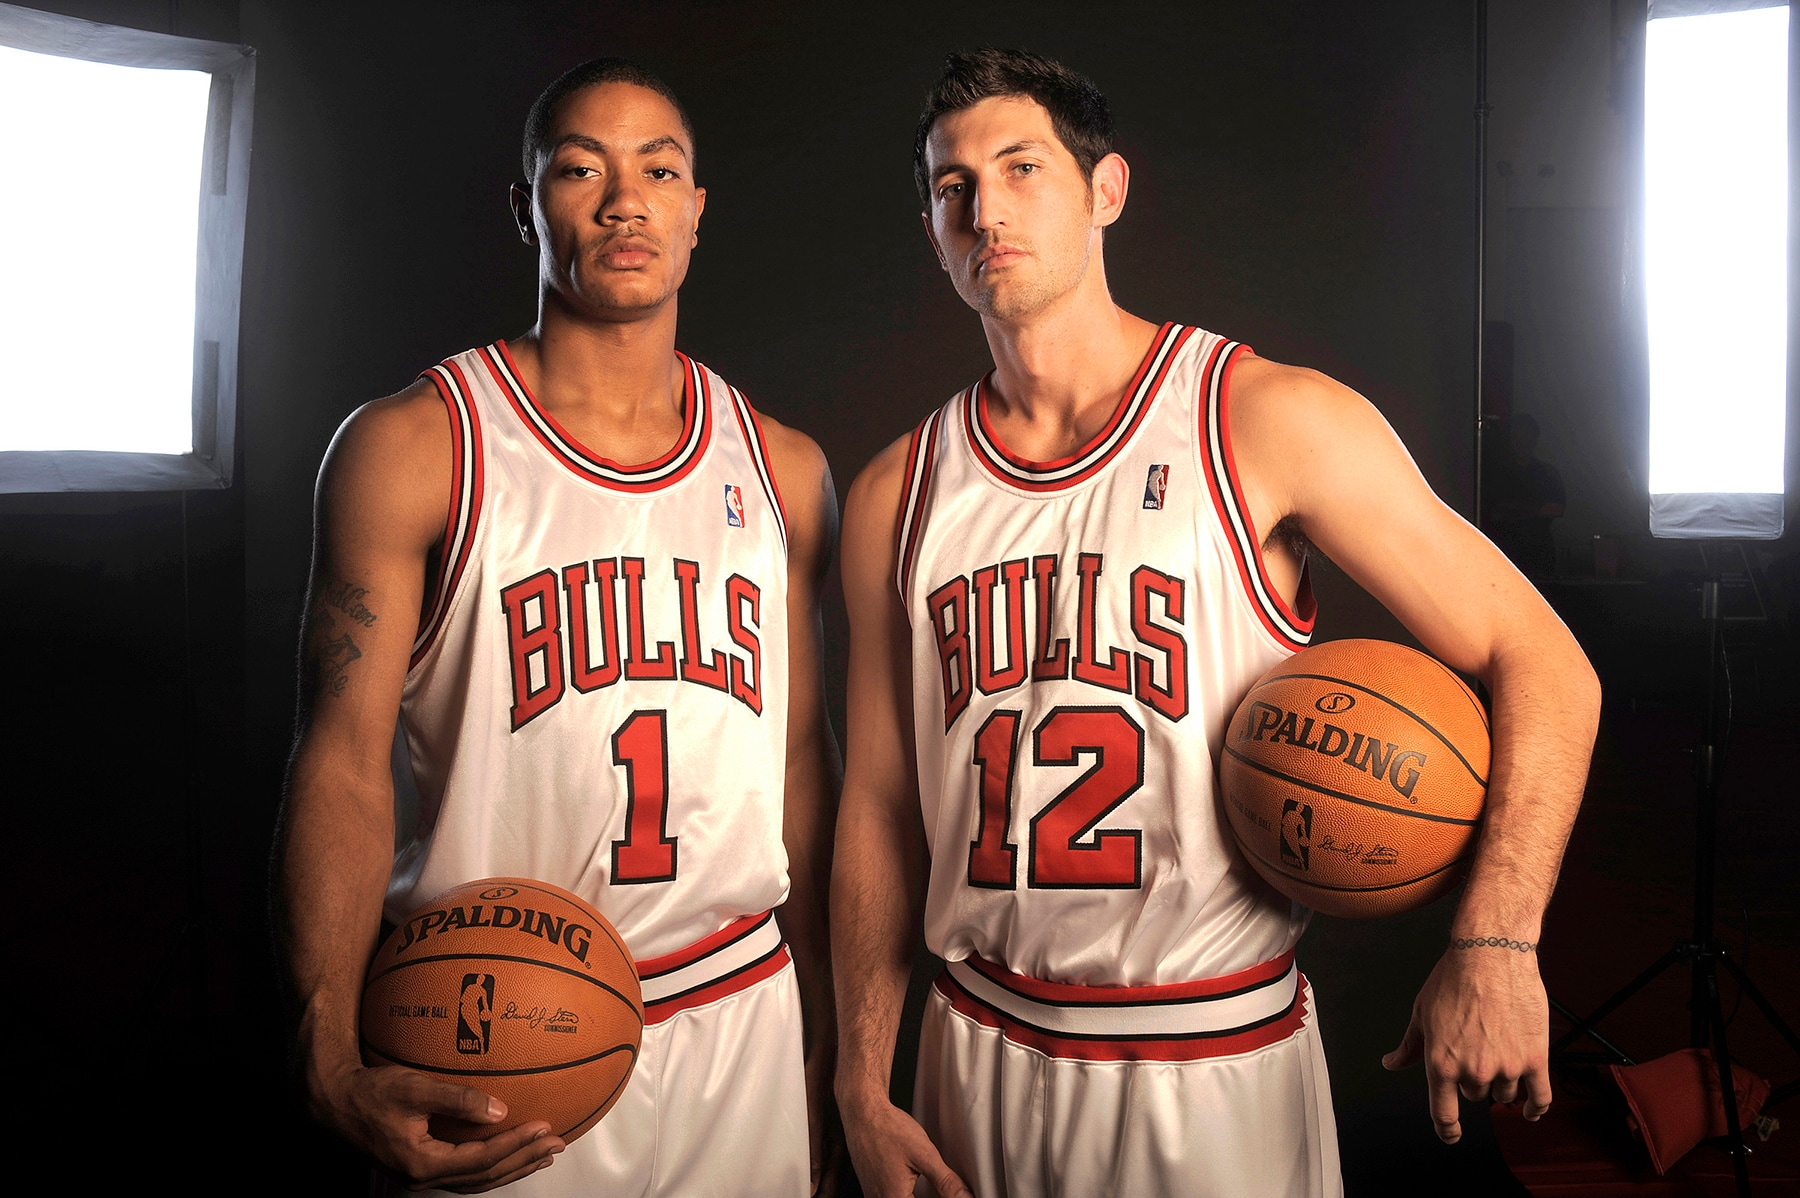 Kirk Hinrich & Derrick Rose During a Photoshoot